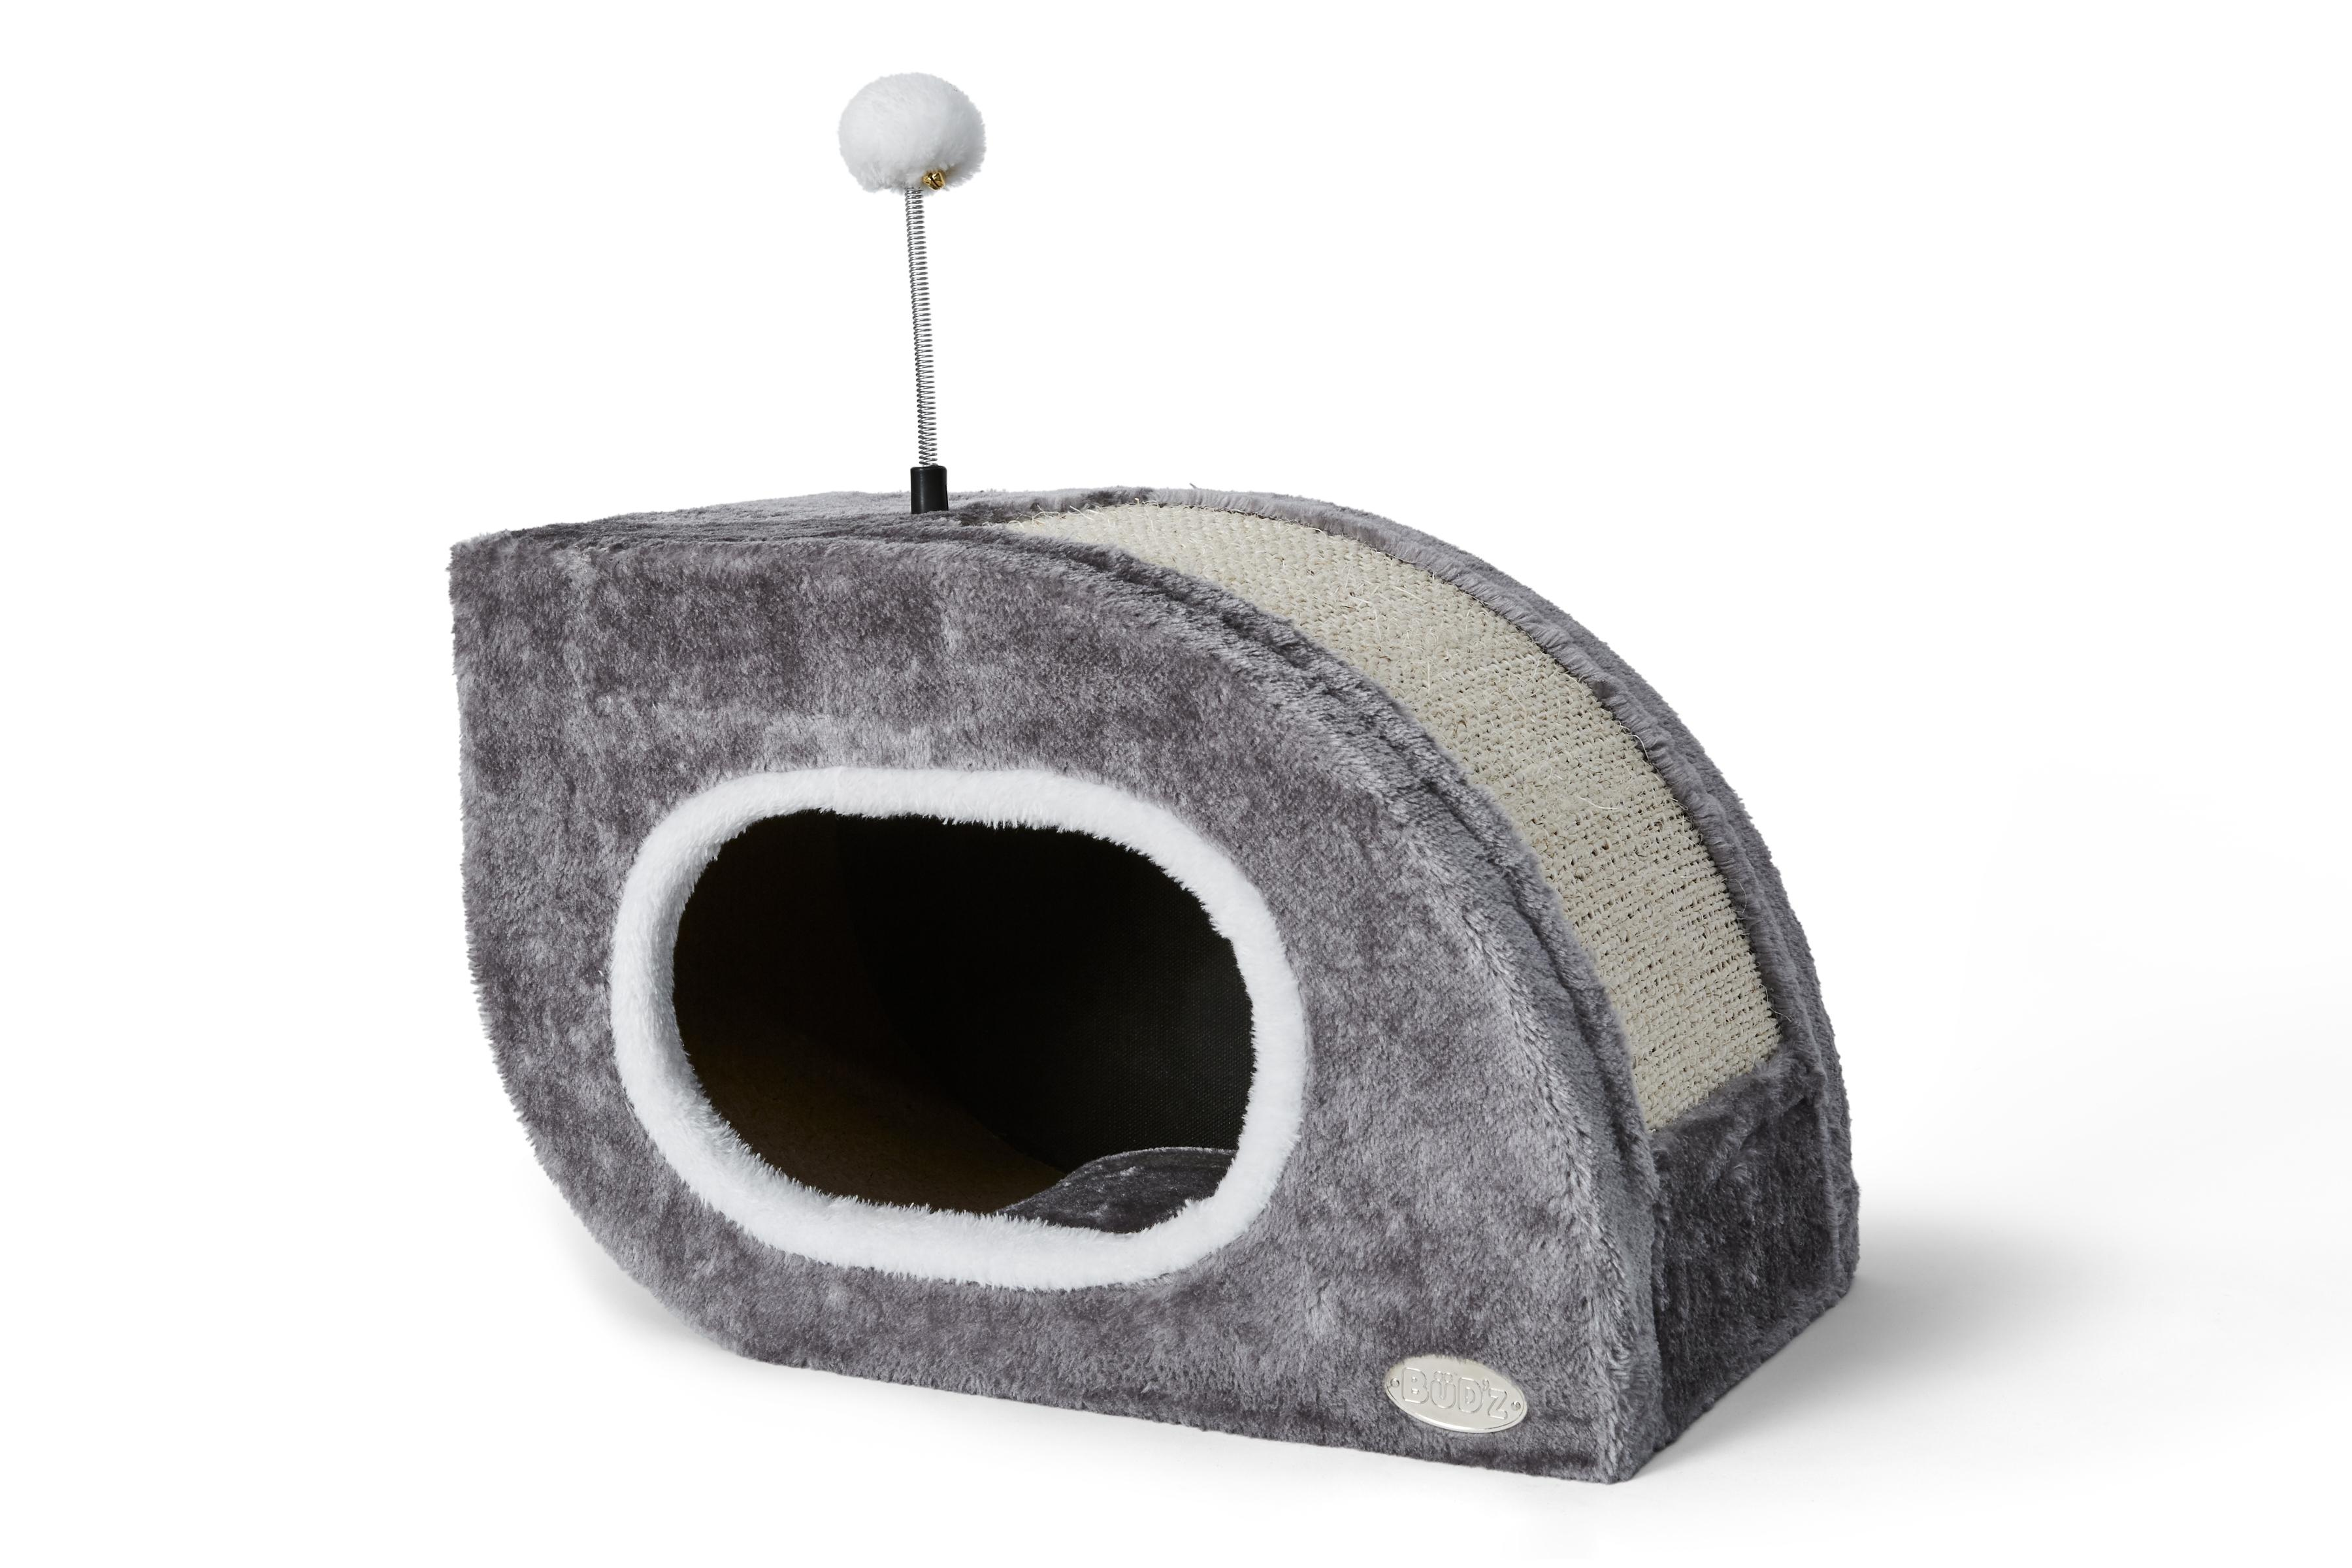 Bud'z Shelters Snail Cat Scratch Box, Grey, 44 x 26 x 30-cm (Size: 44 x 26 x 30-cm) Image